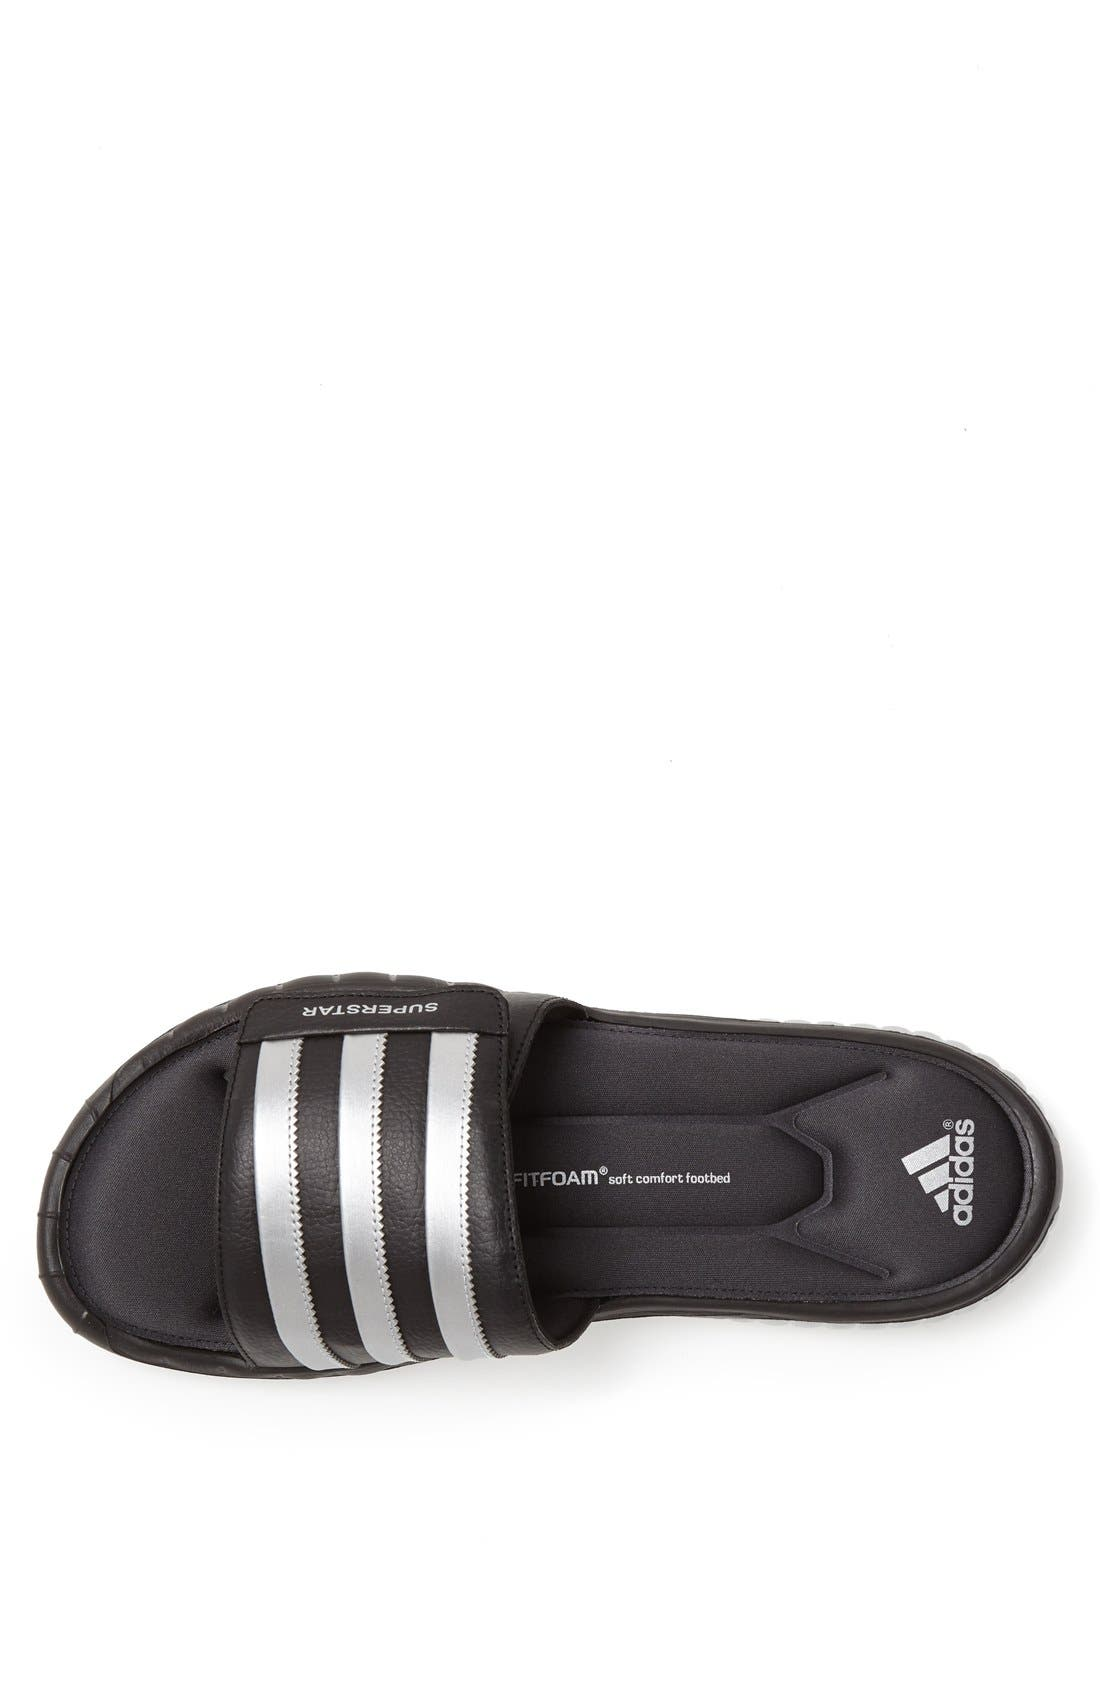 Superstar 3G Slide Sandal,                             Alternate thumbnail 3, color,                             001